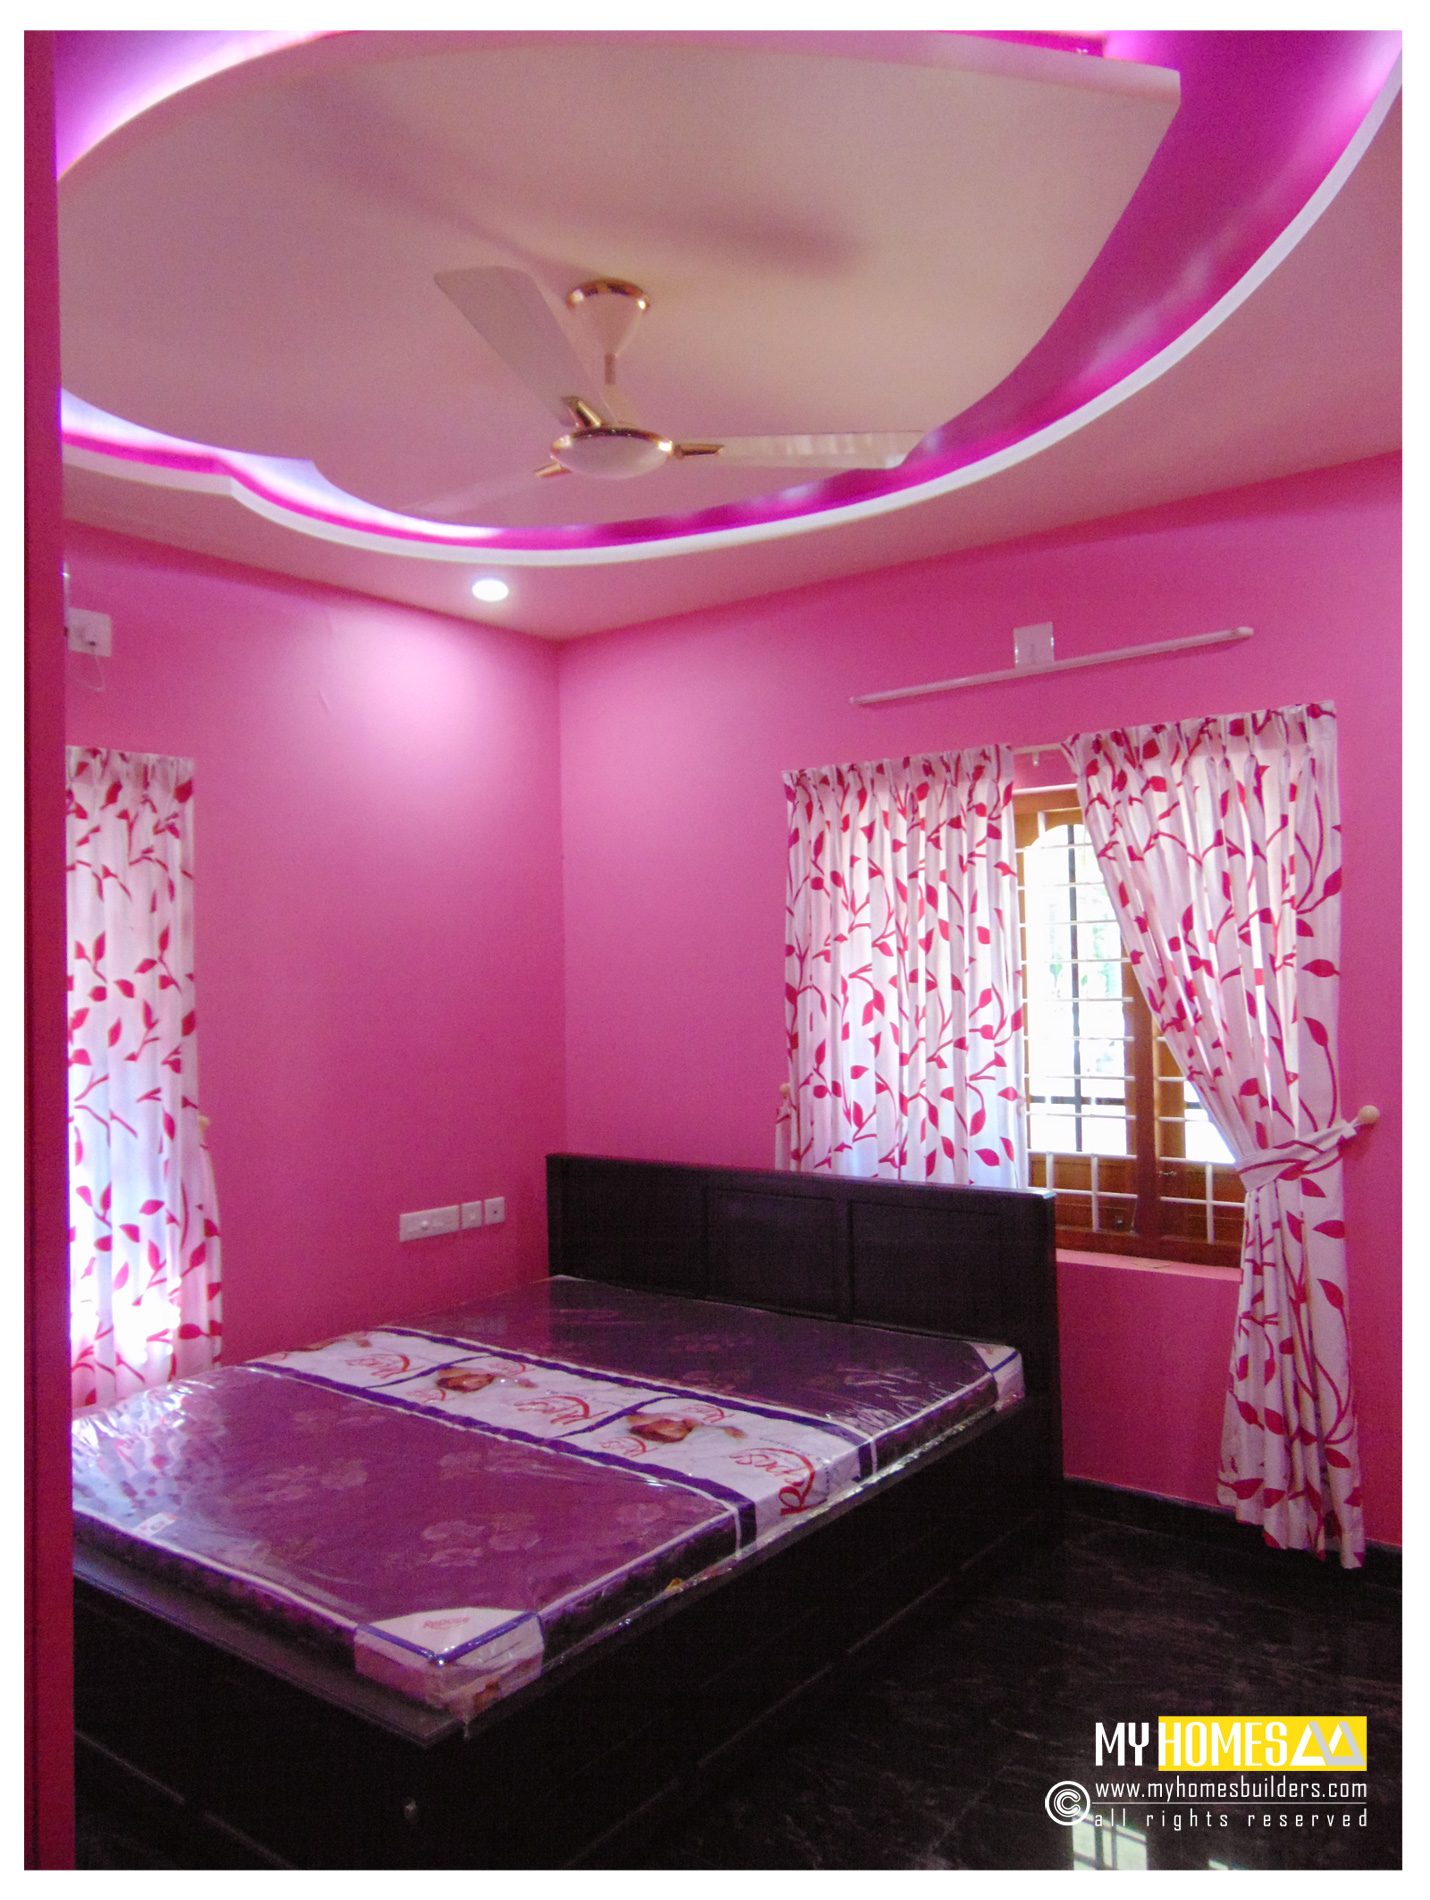 Simple style kerala bedroom designs ideas for home interior for Bedroom designs